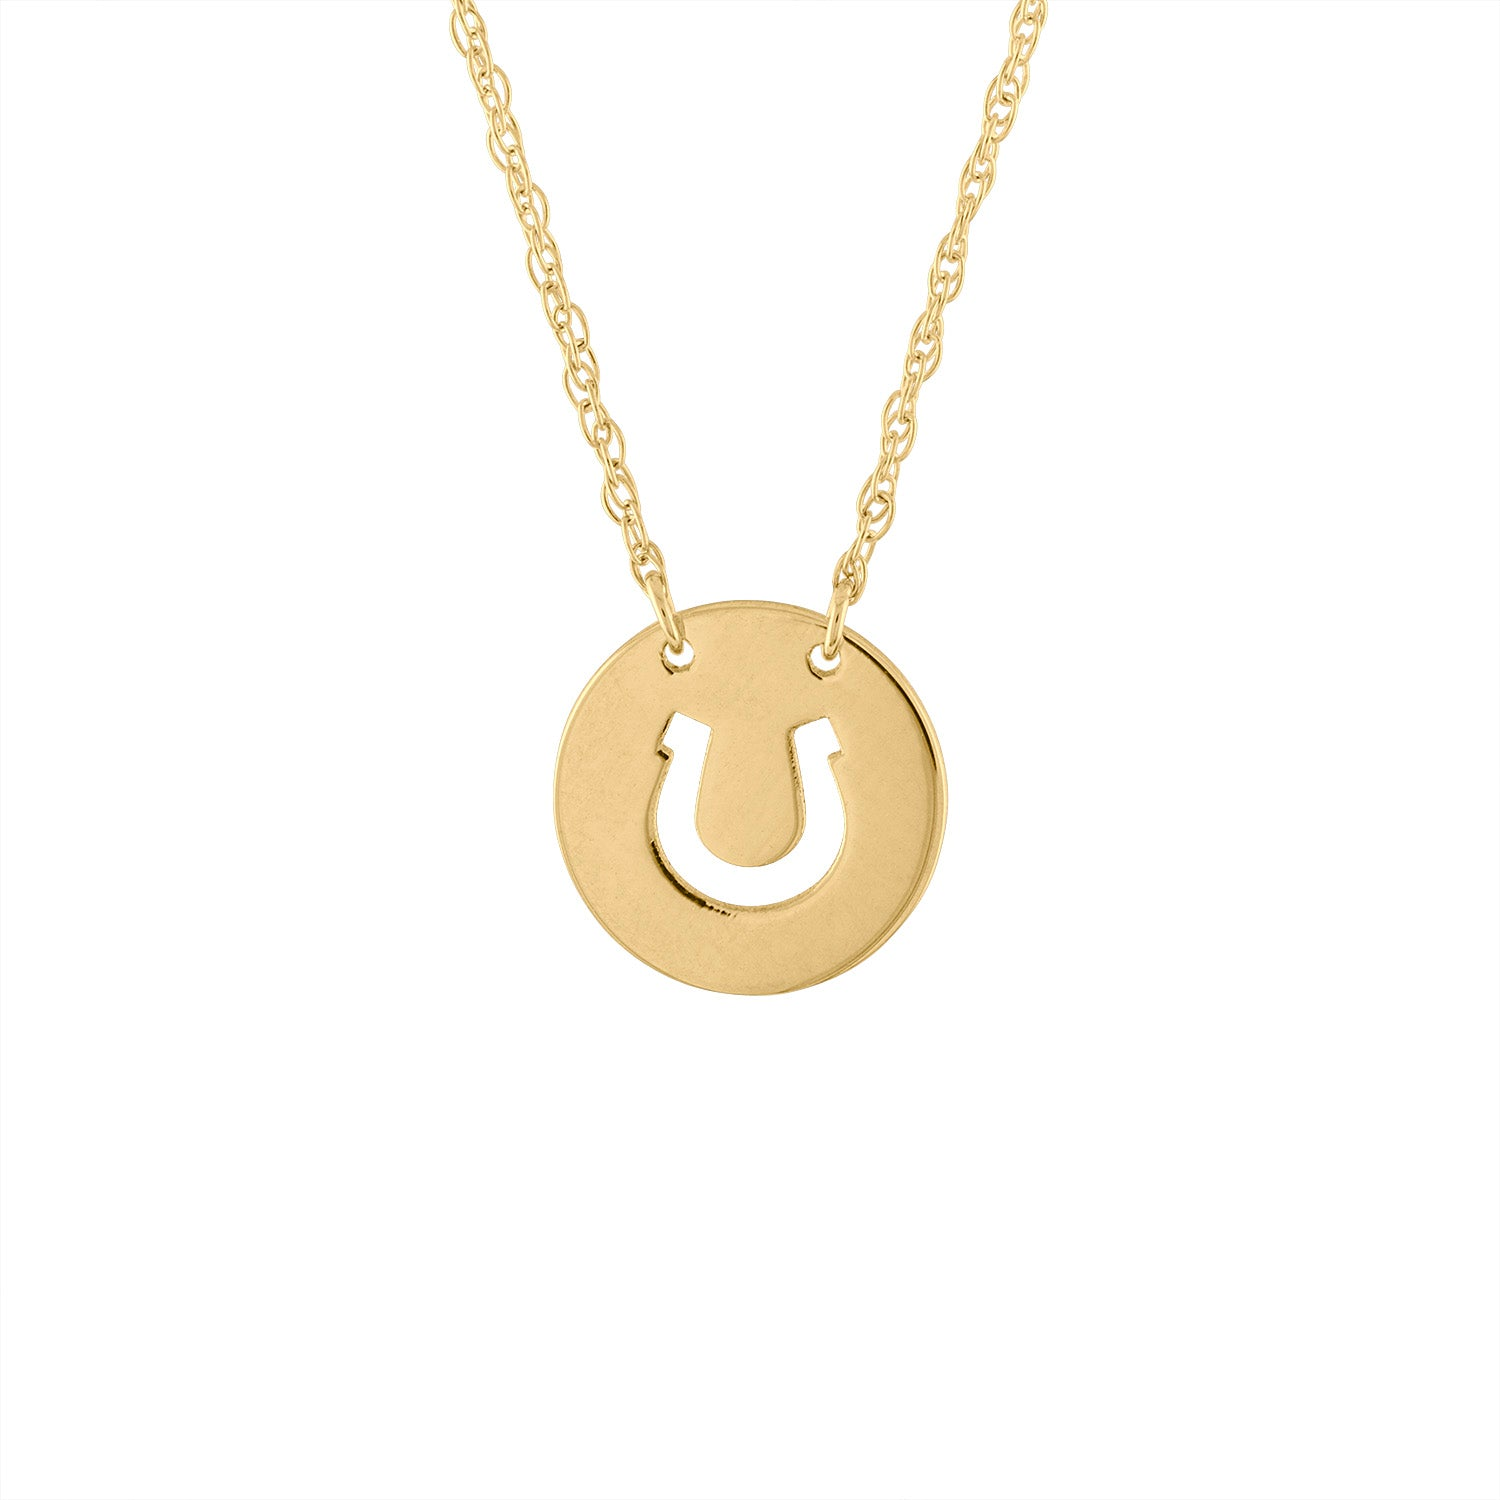 14KT GOLD CUT OUT HORSESHOE DISK NECKLACE